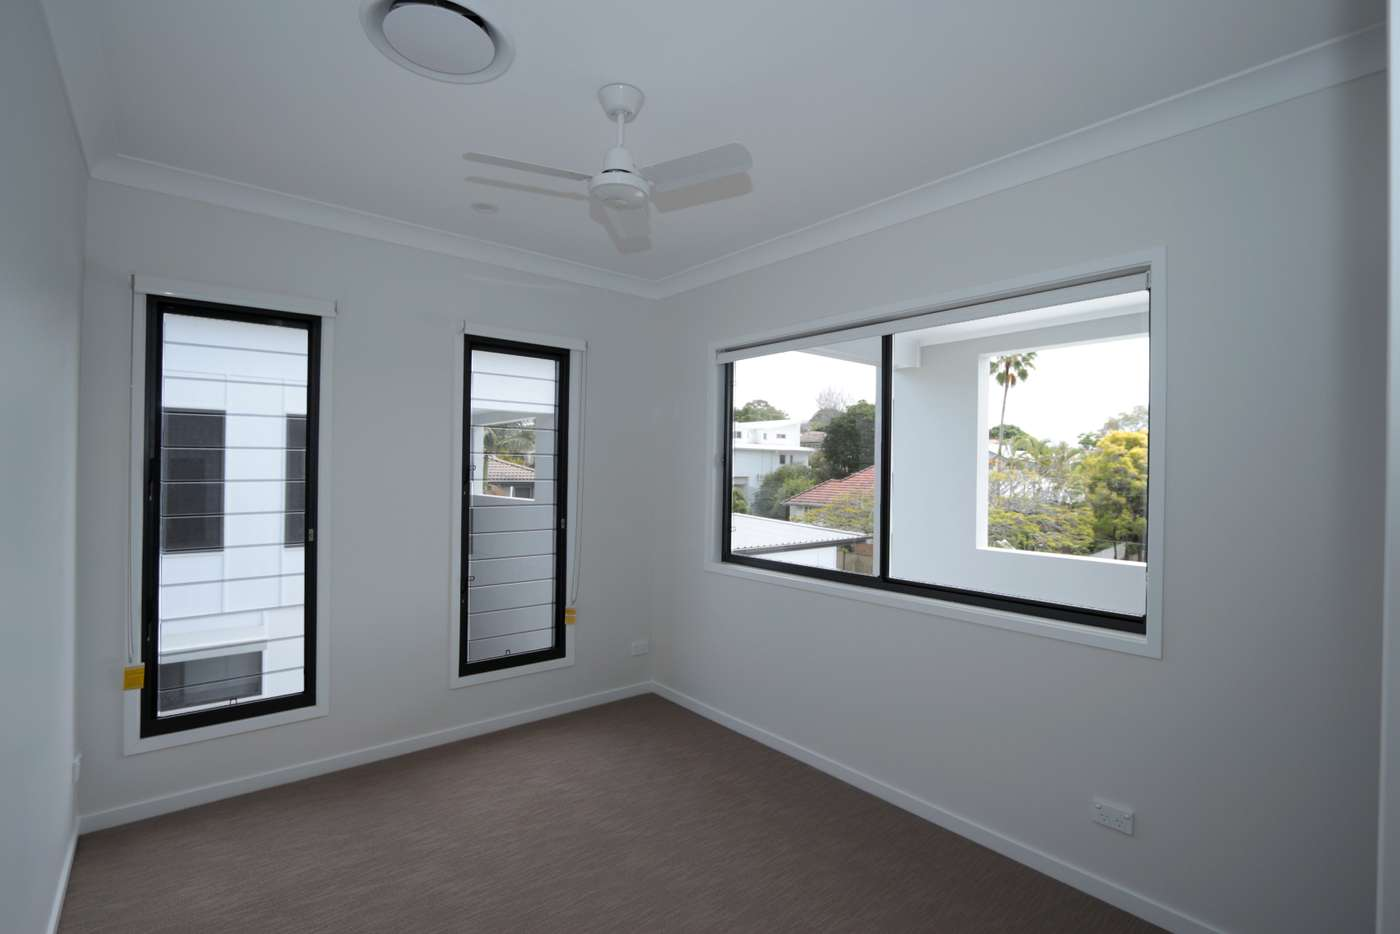 Sixth view of Homely townhouse listing, 22 Creighton Street, Mount Gravatt QLD 4122